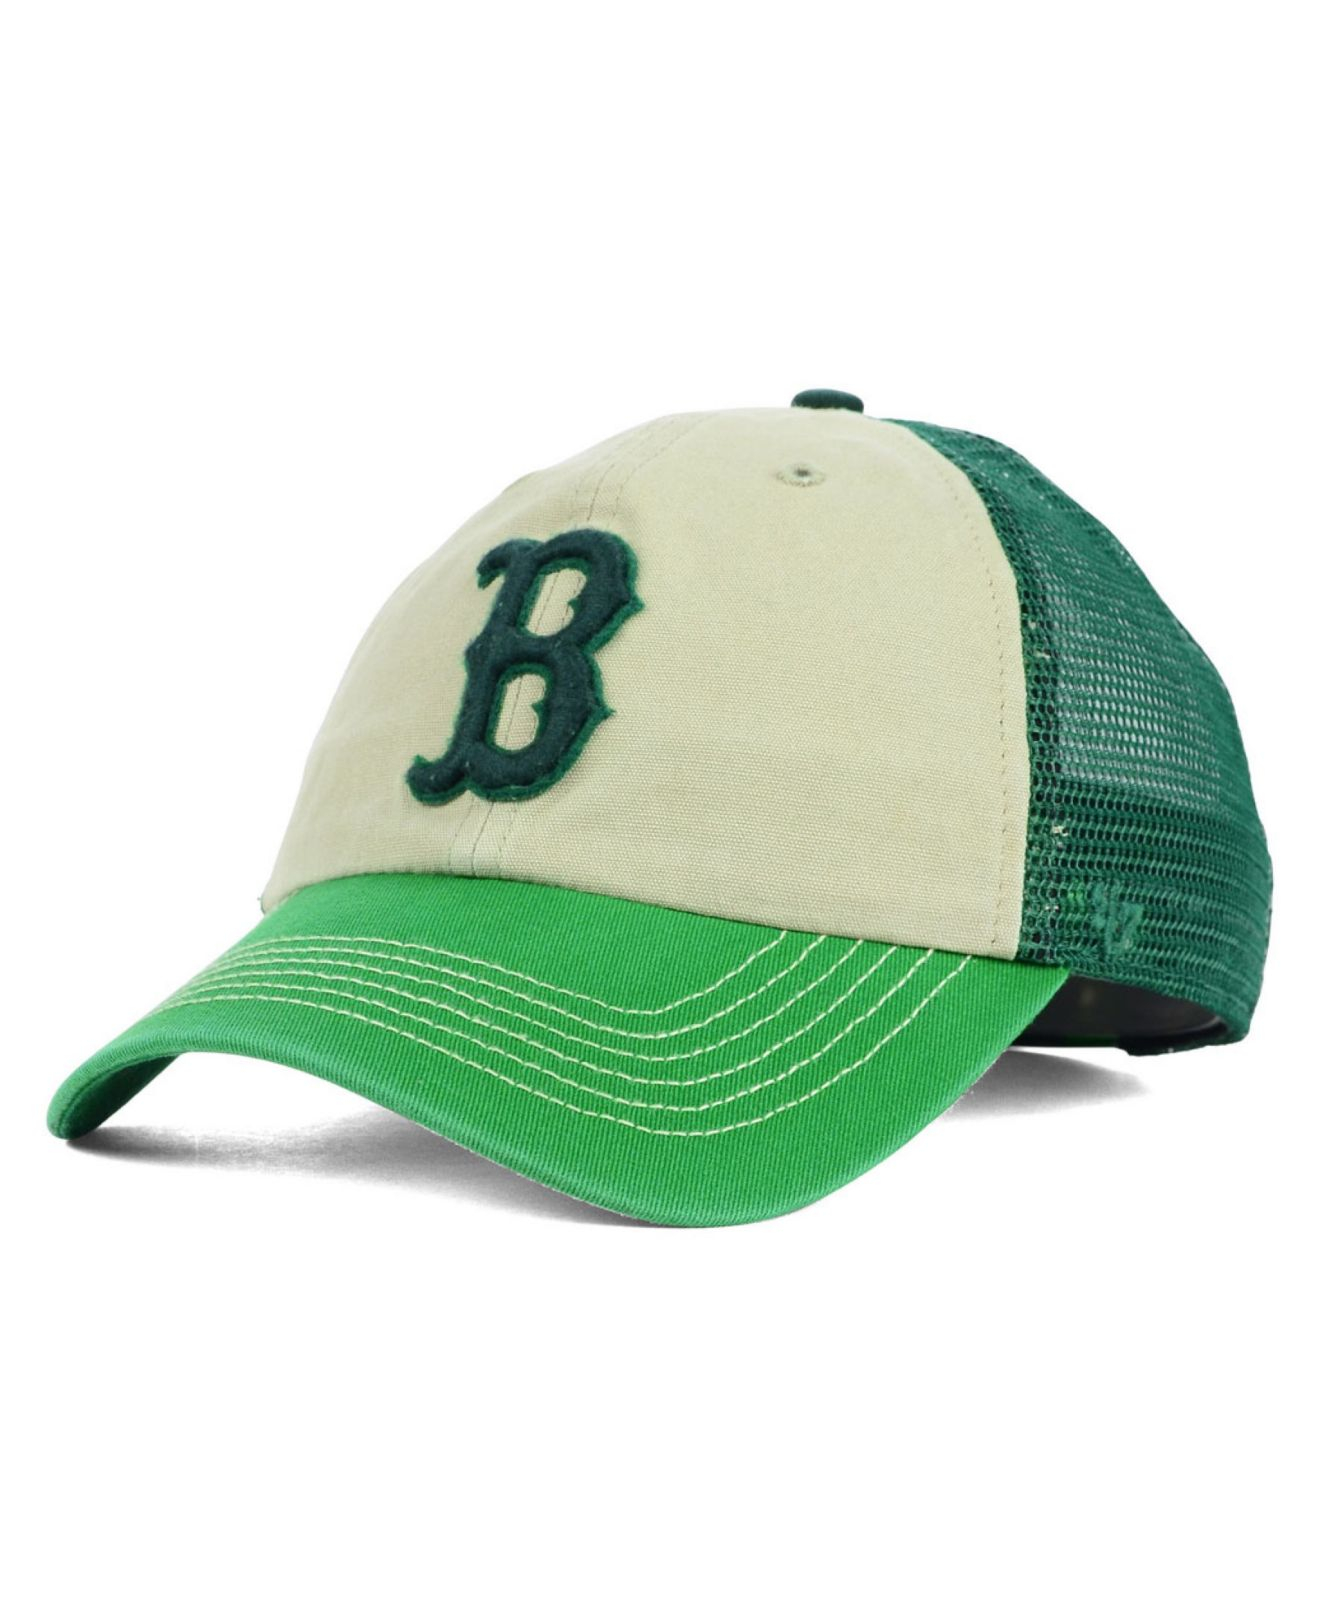 Lyst - 47 Brand Boston Red Sox Mcnally Clean Up Cap in Green for Men 24db31ee660